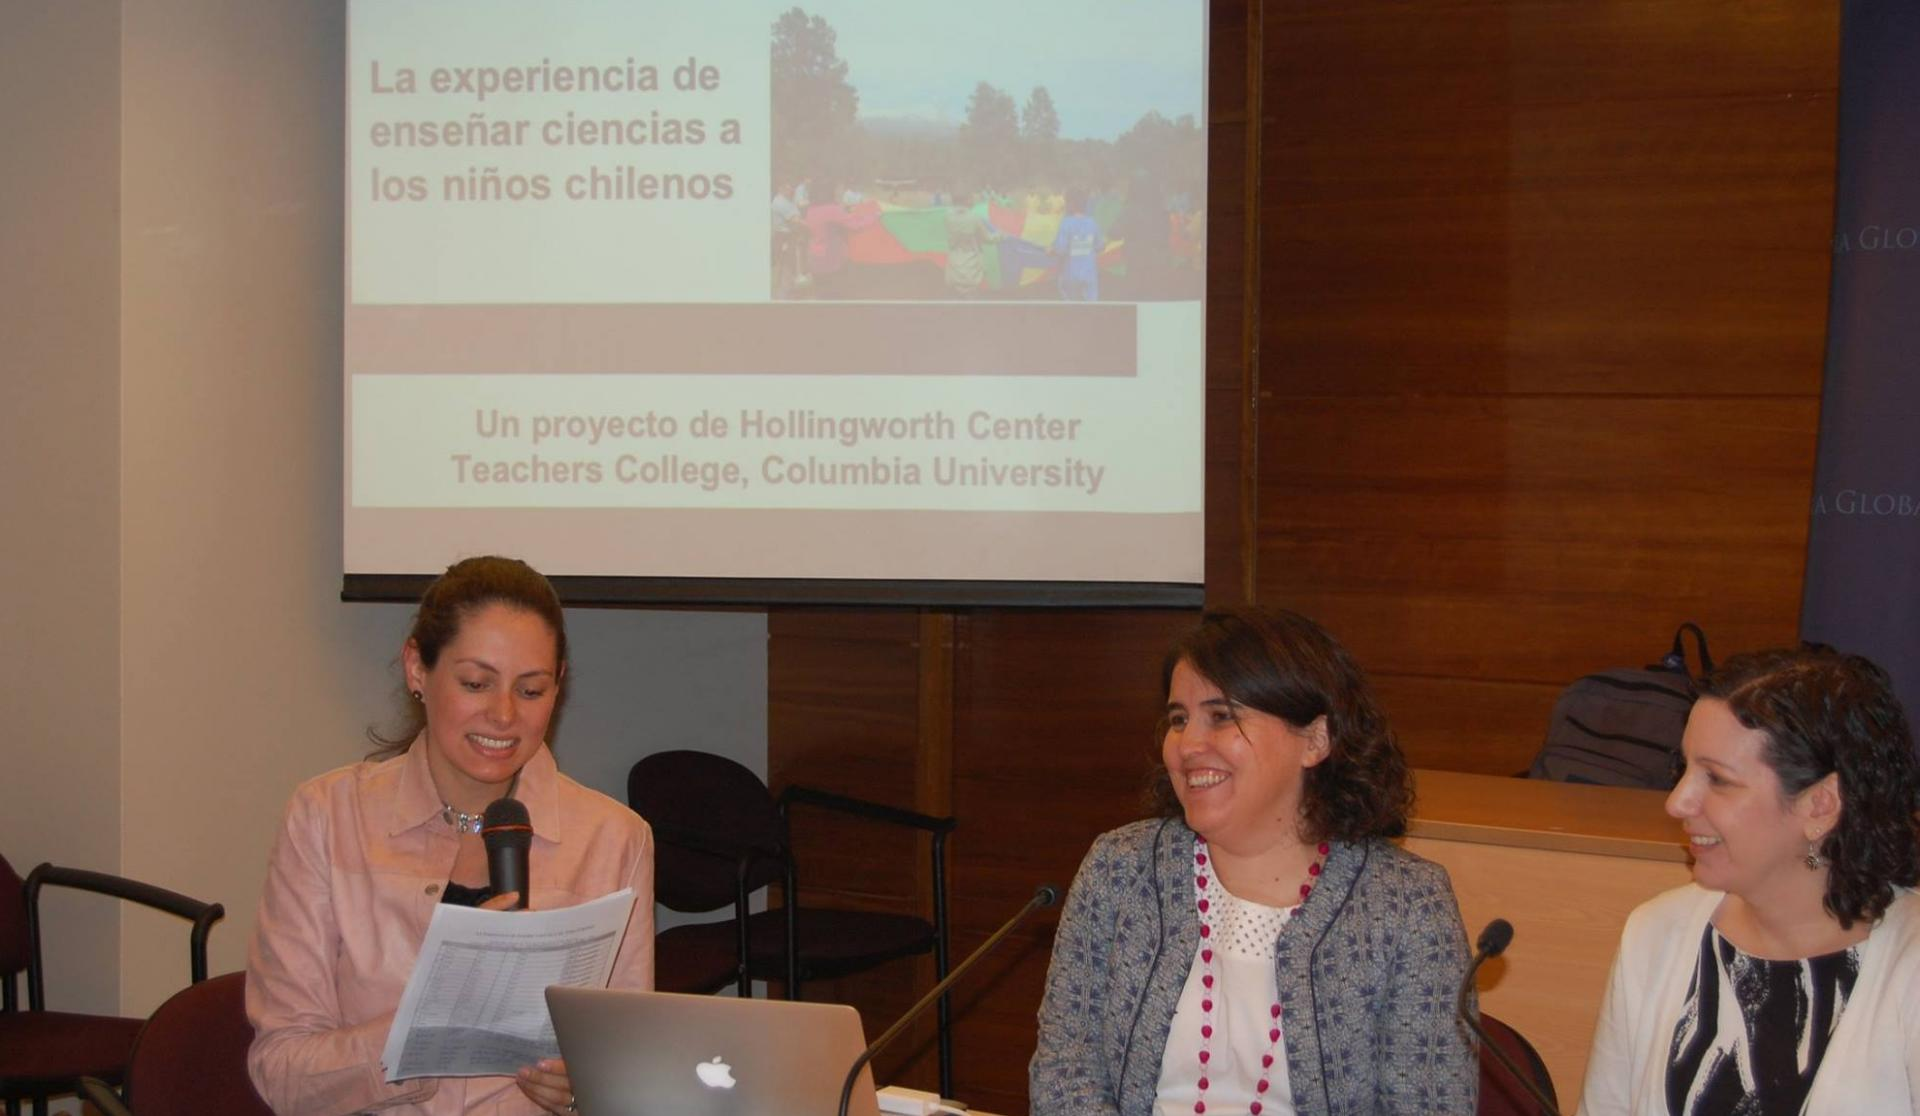 Lecture: The Experience of Teaching Science in Chile